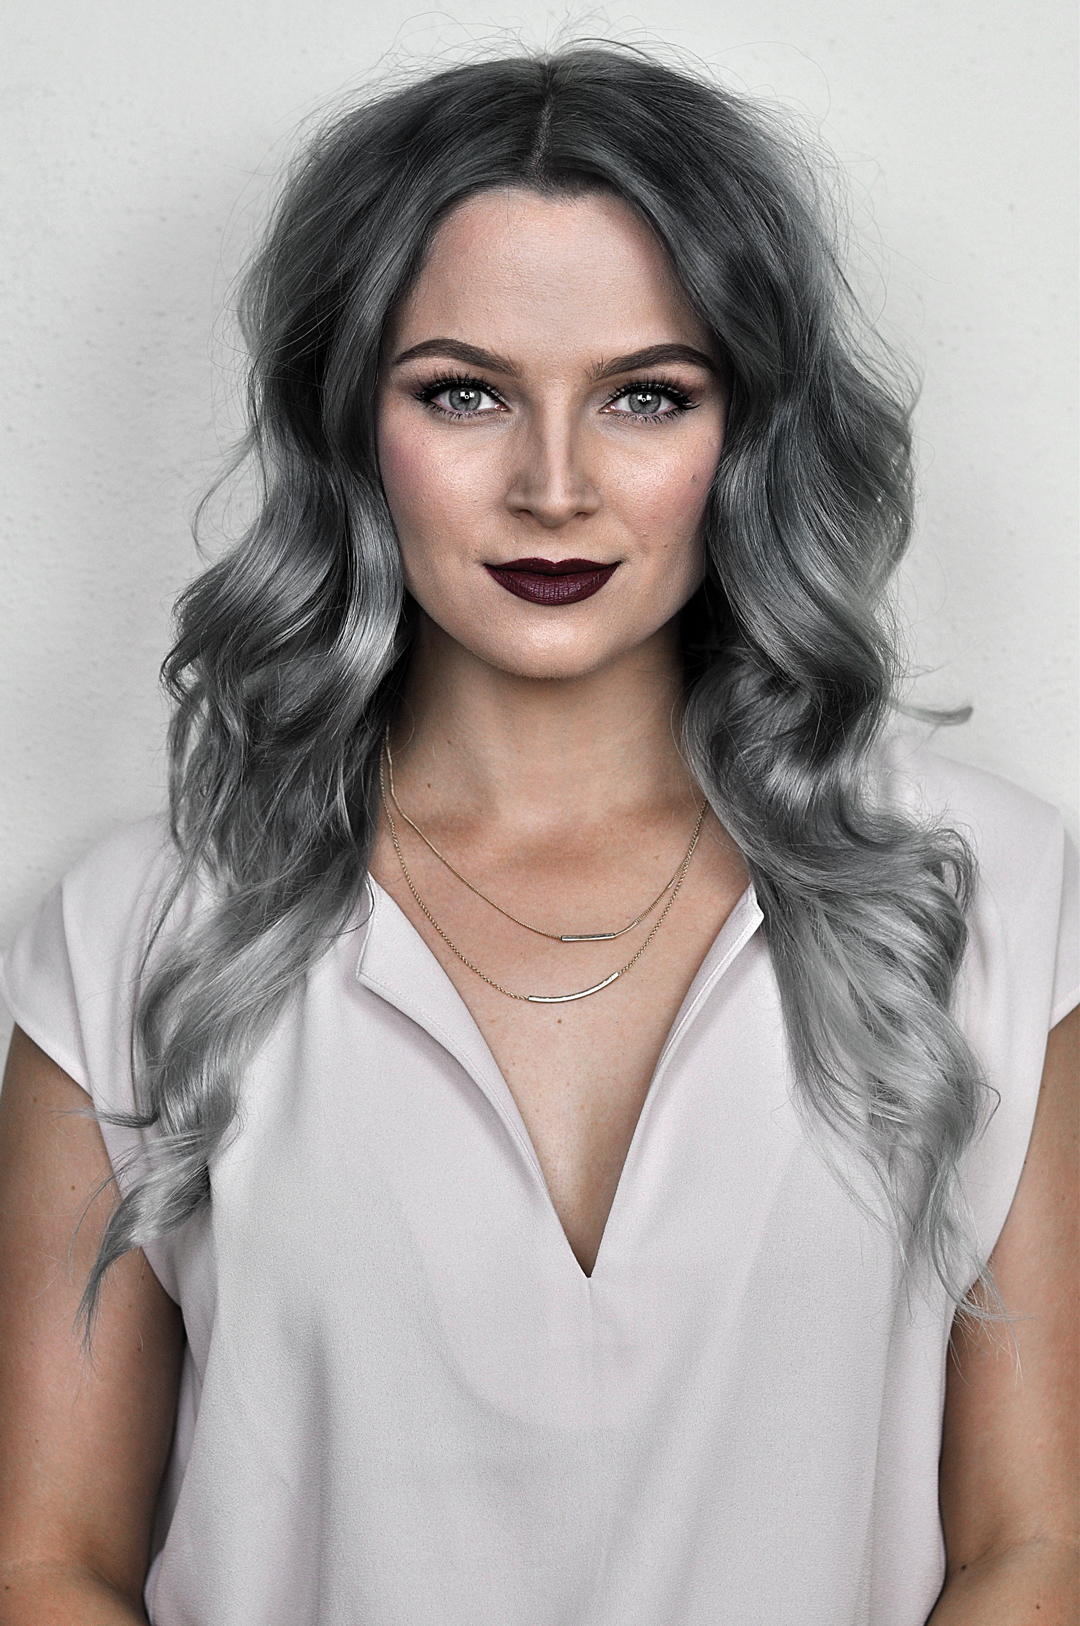 Silver ombre hair dye tutorial with overtone mayalamode check out this tutorial to learn how to get that perfect silver ombre hair at home solutioingenieria Gallery